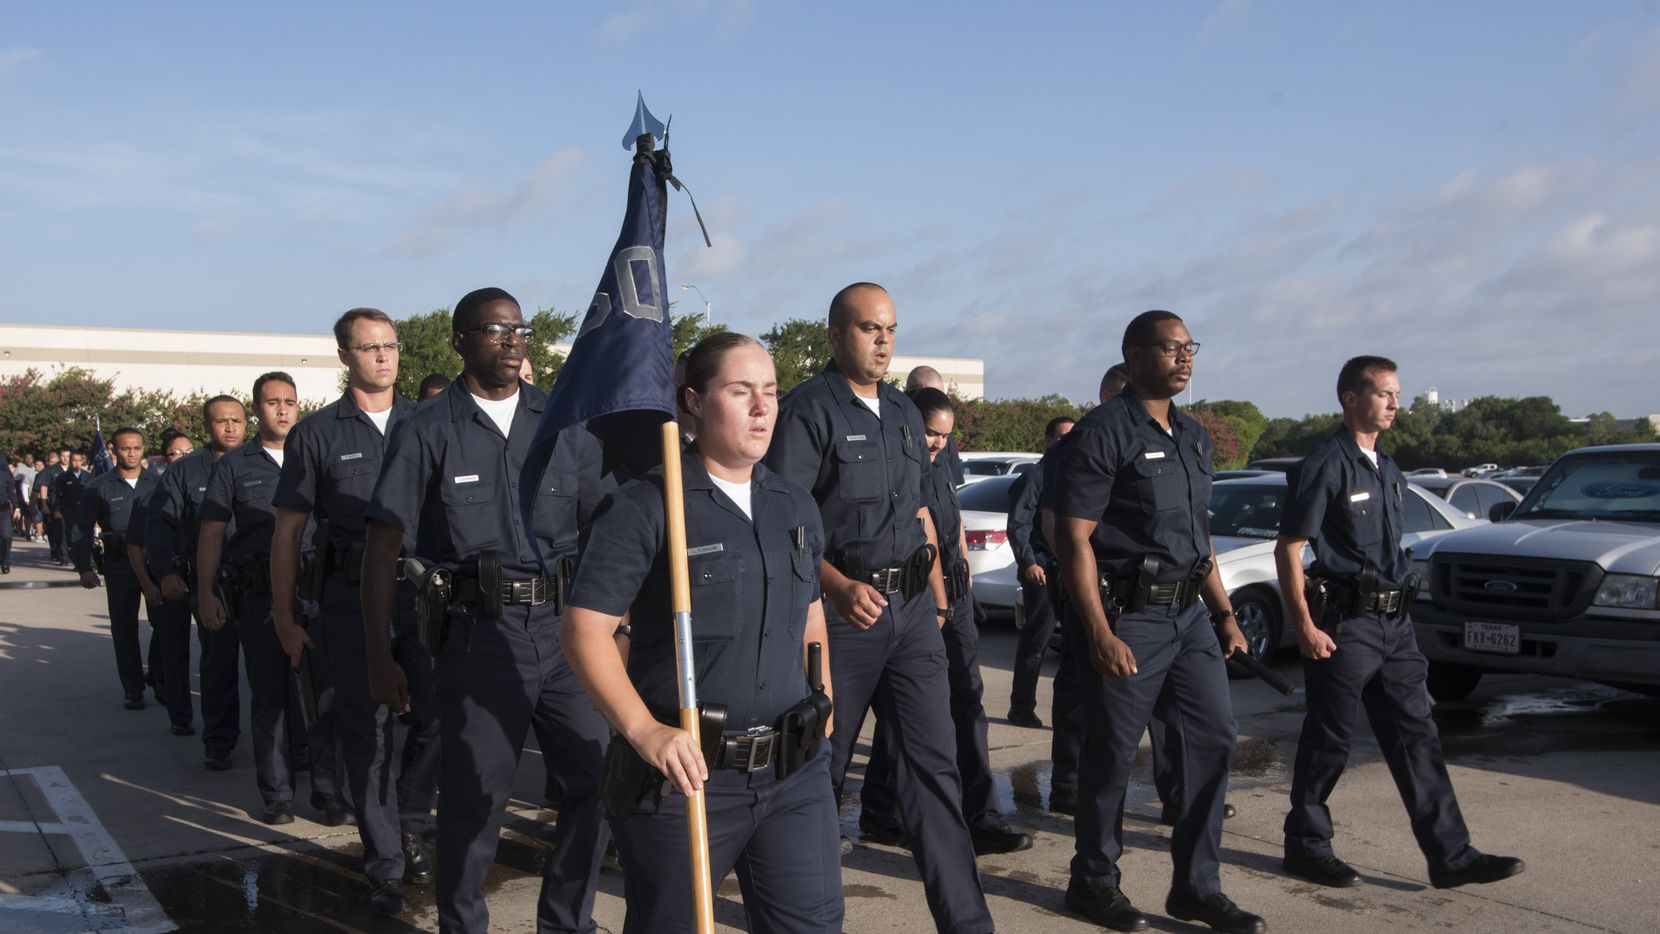 Dallas Police Department recruits march through morning formation at the Dallas Police Academy.